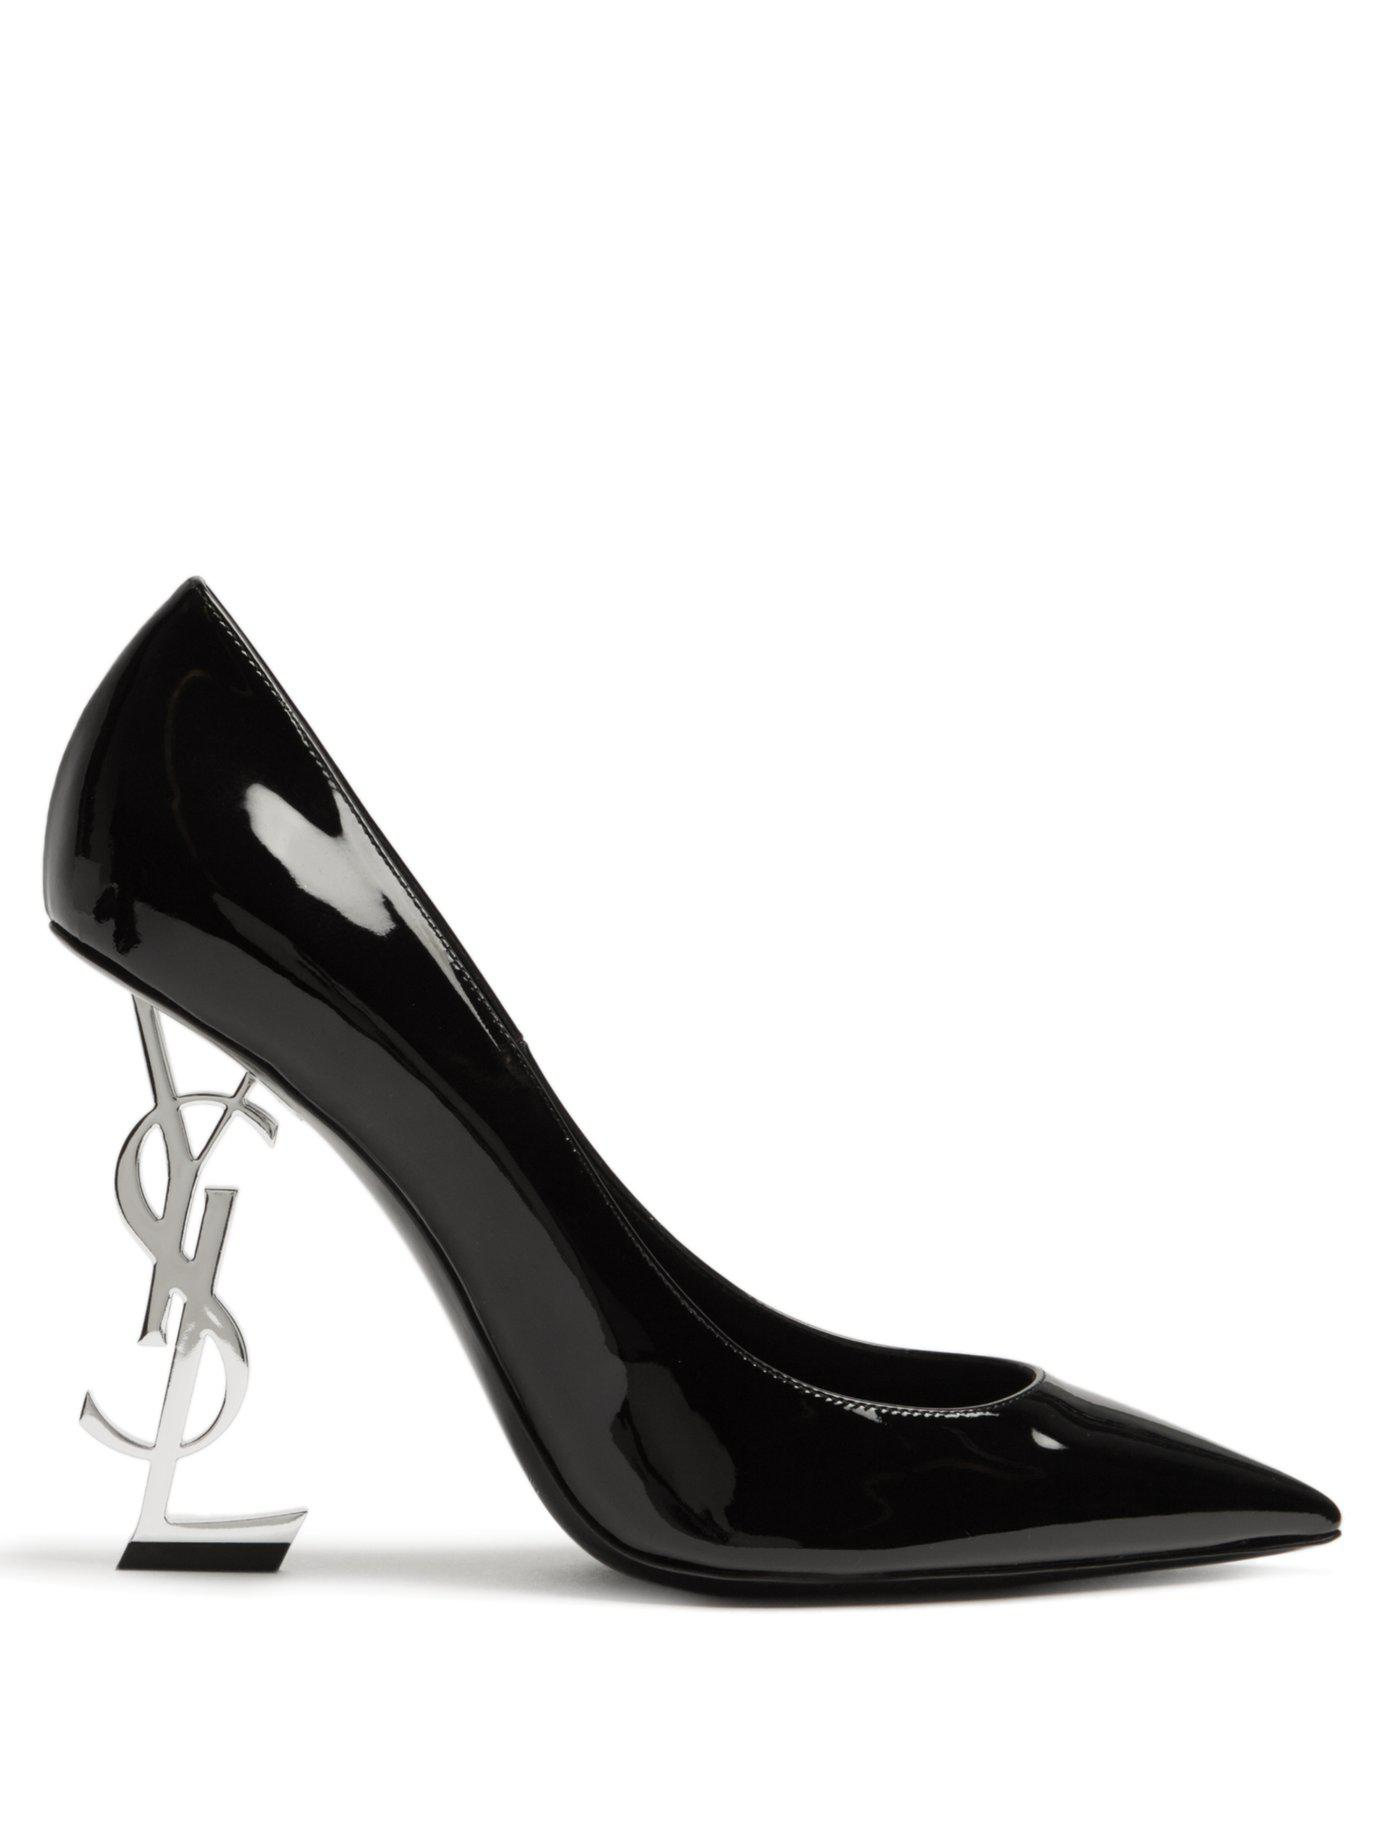 585aad96451a Lyst - Saint Laurent Opium Logo-heel Patent-leather Pumps in Black